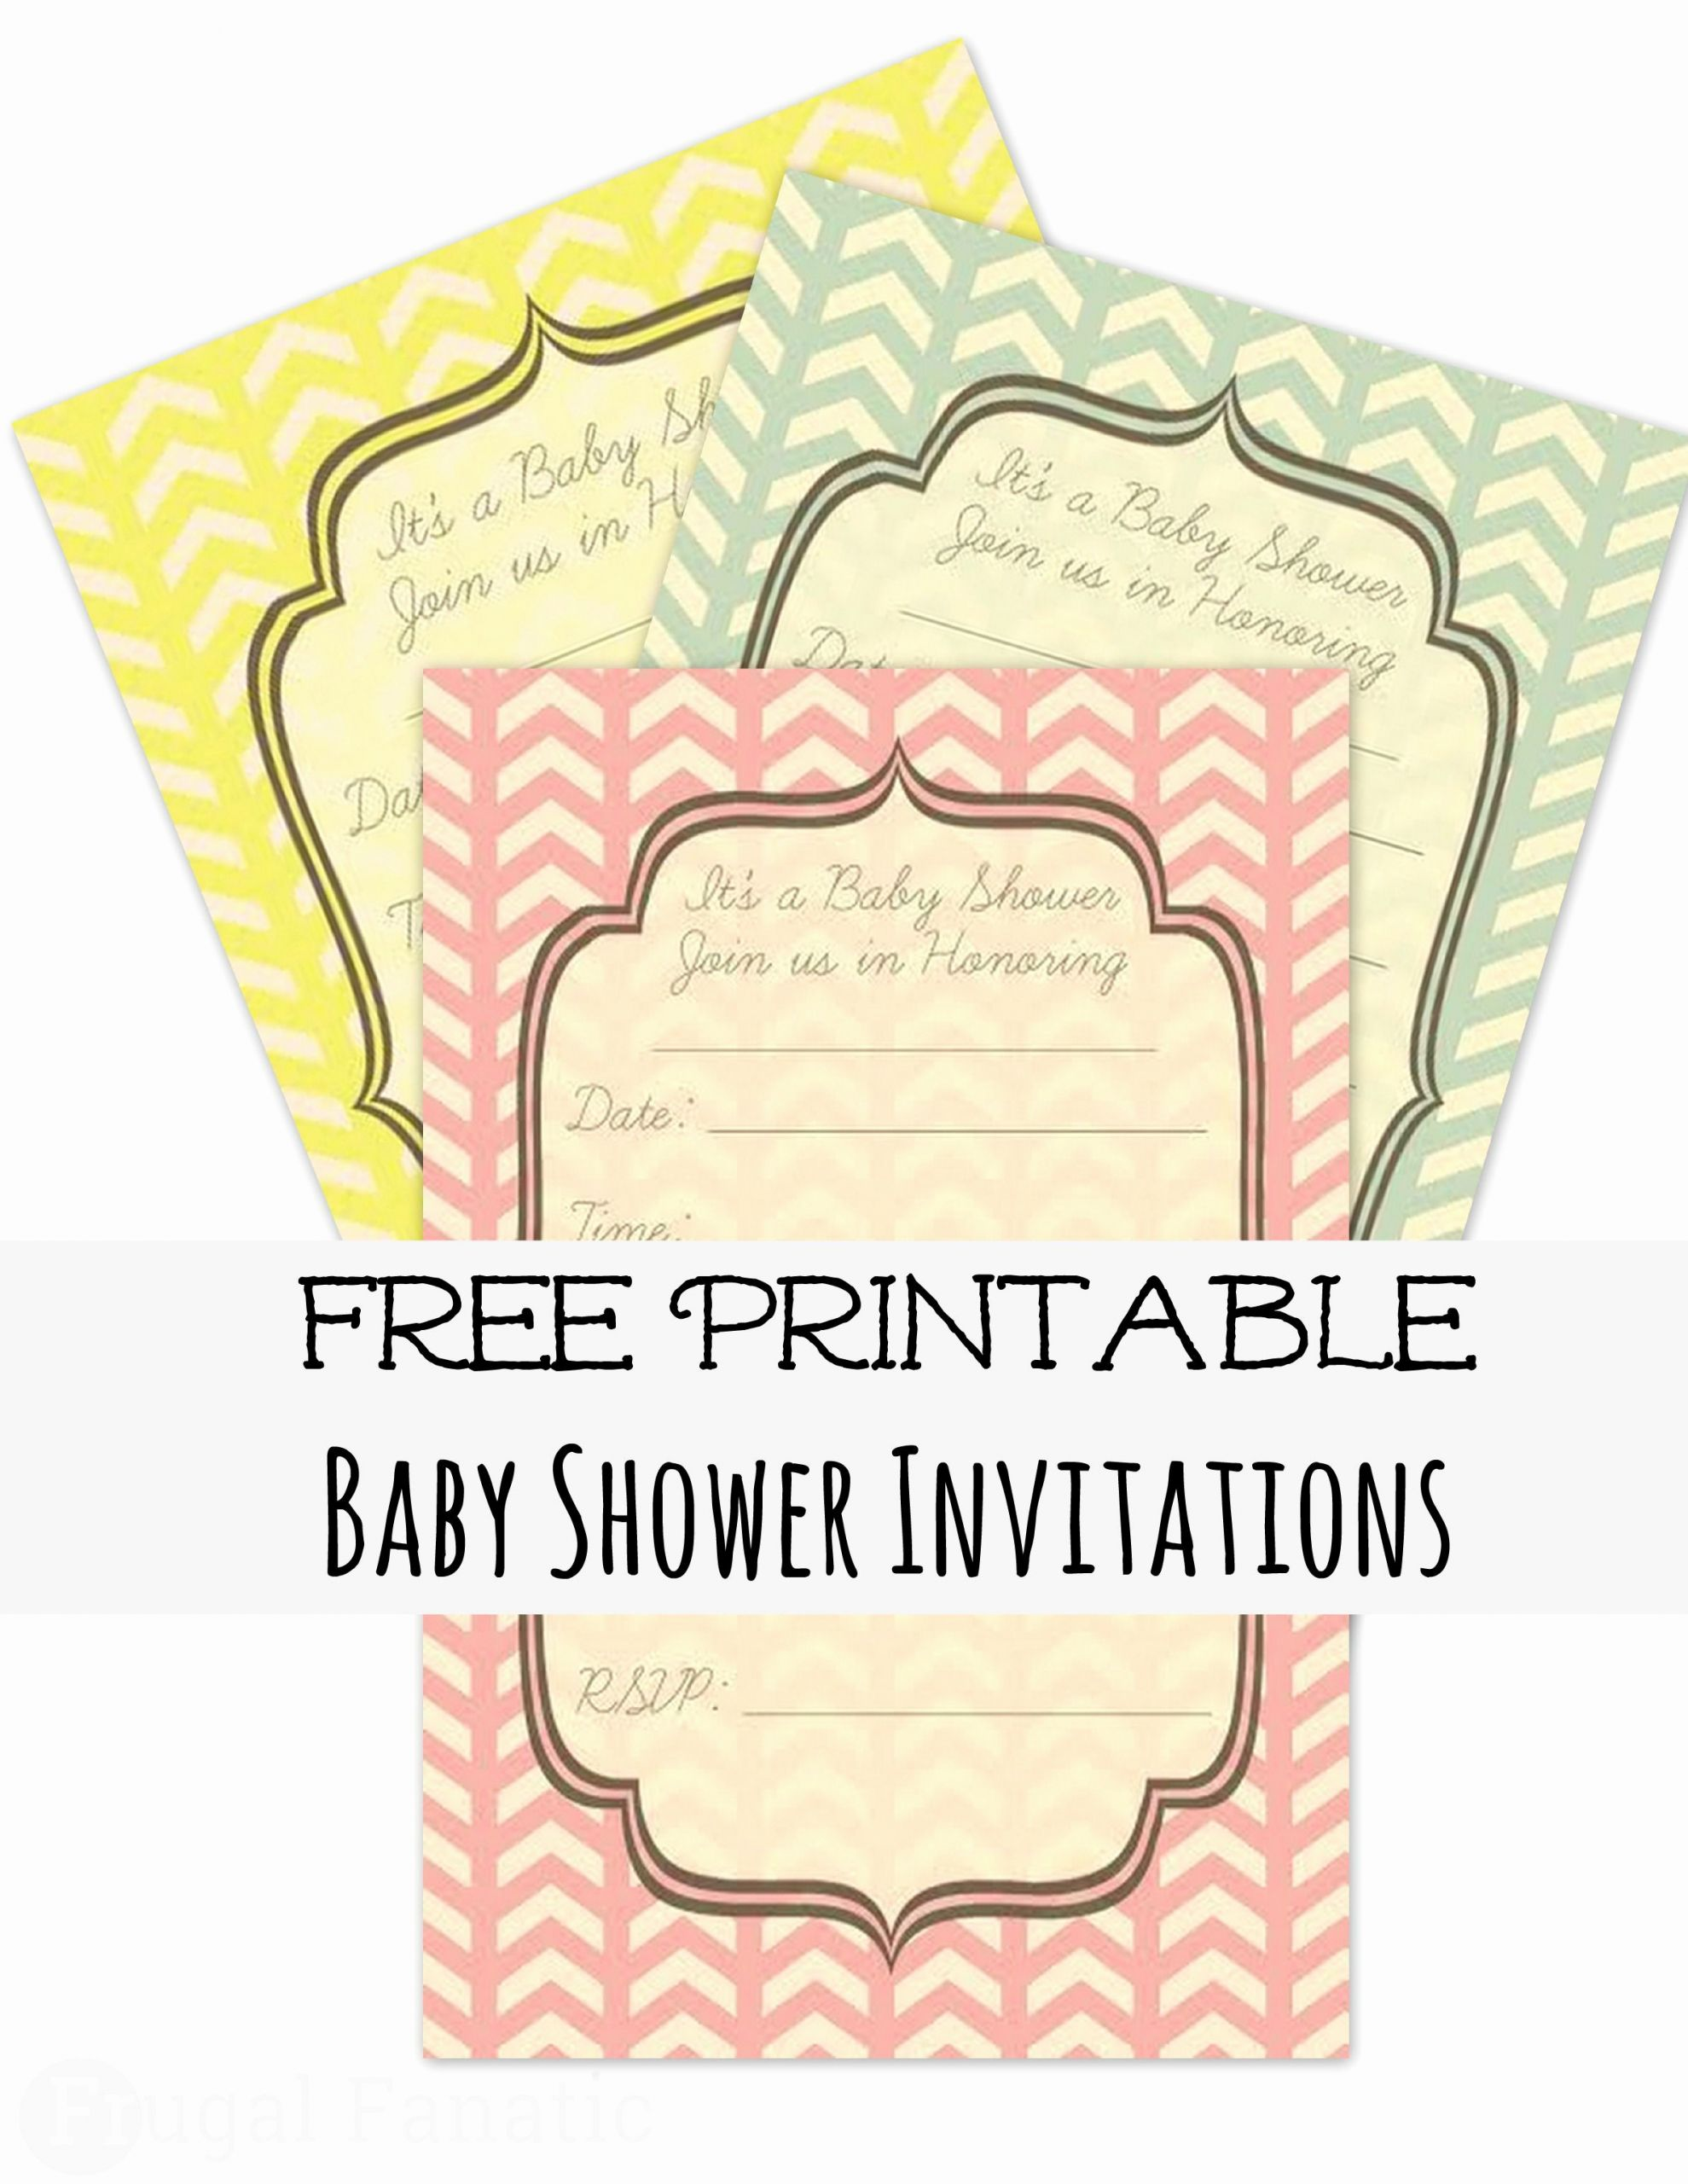 Free Shower Invitation Template Fresh Baby Shower Invitation Free Baby Shower Invitation